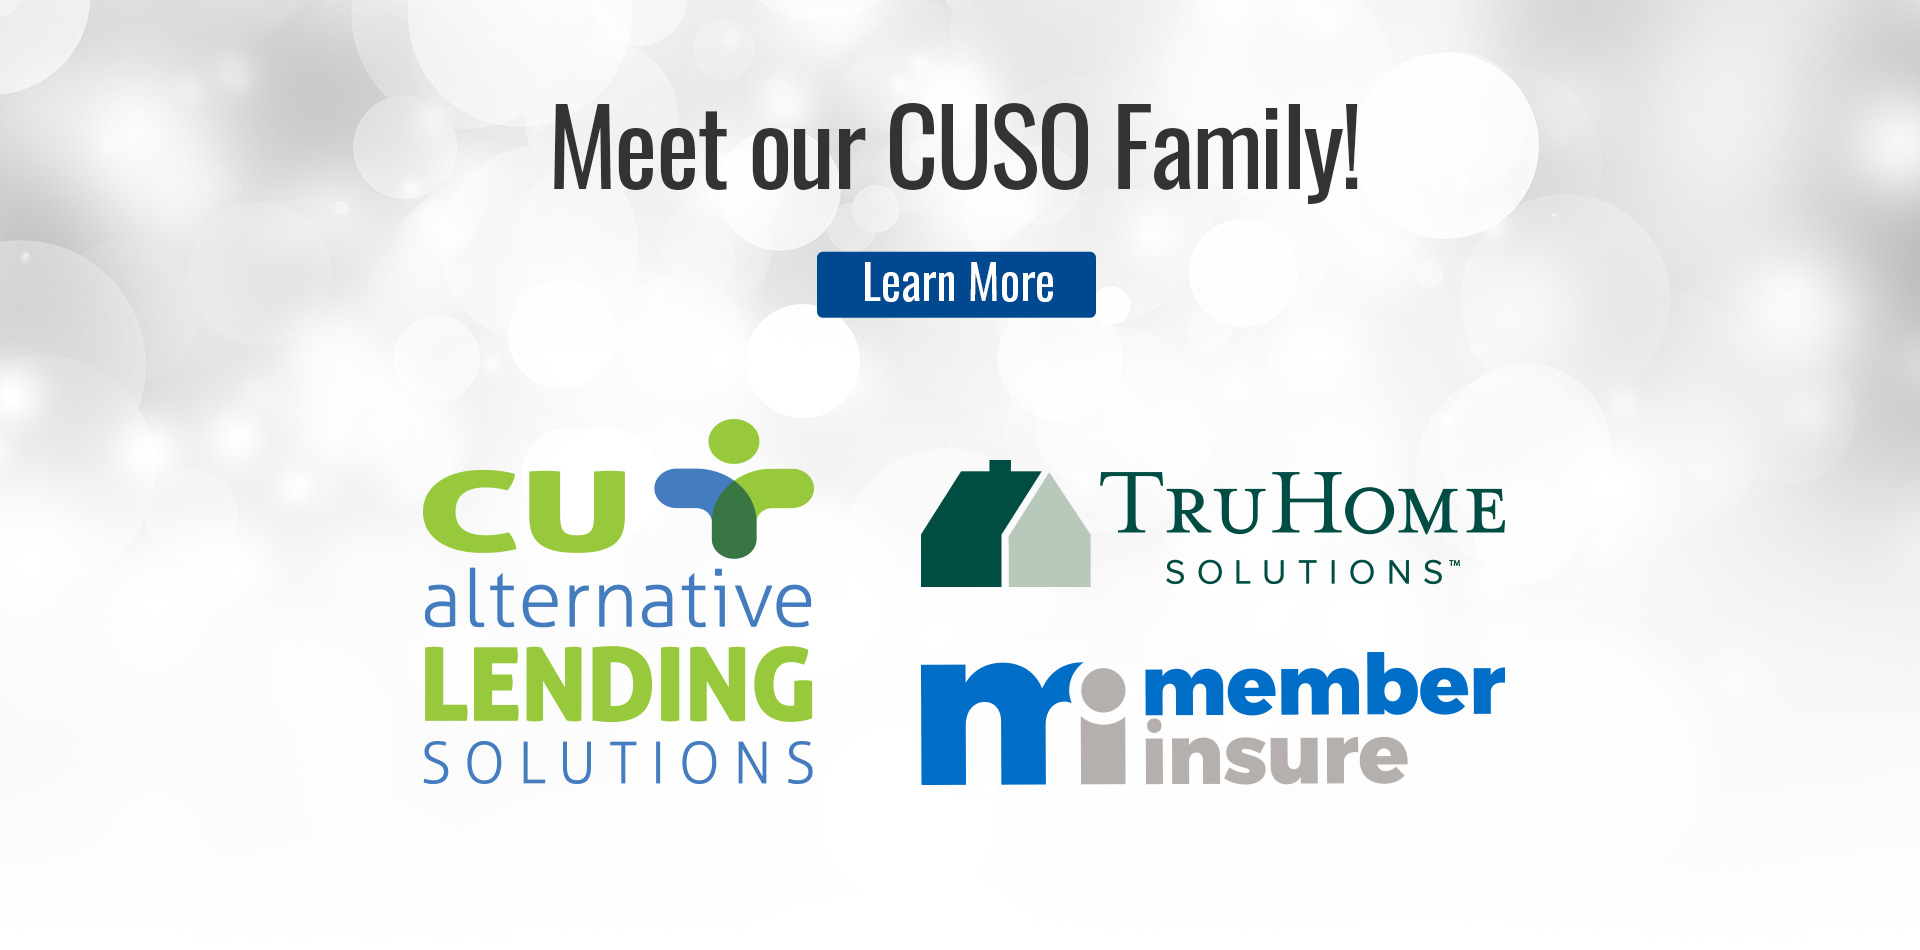 Meet Our CUSO Family!